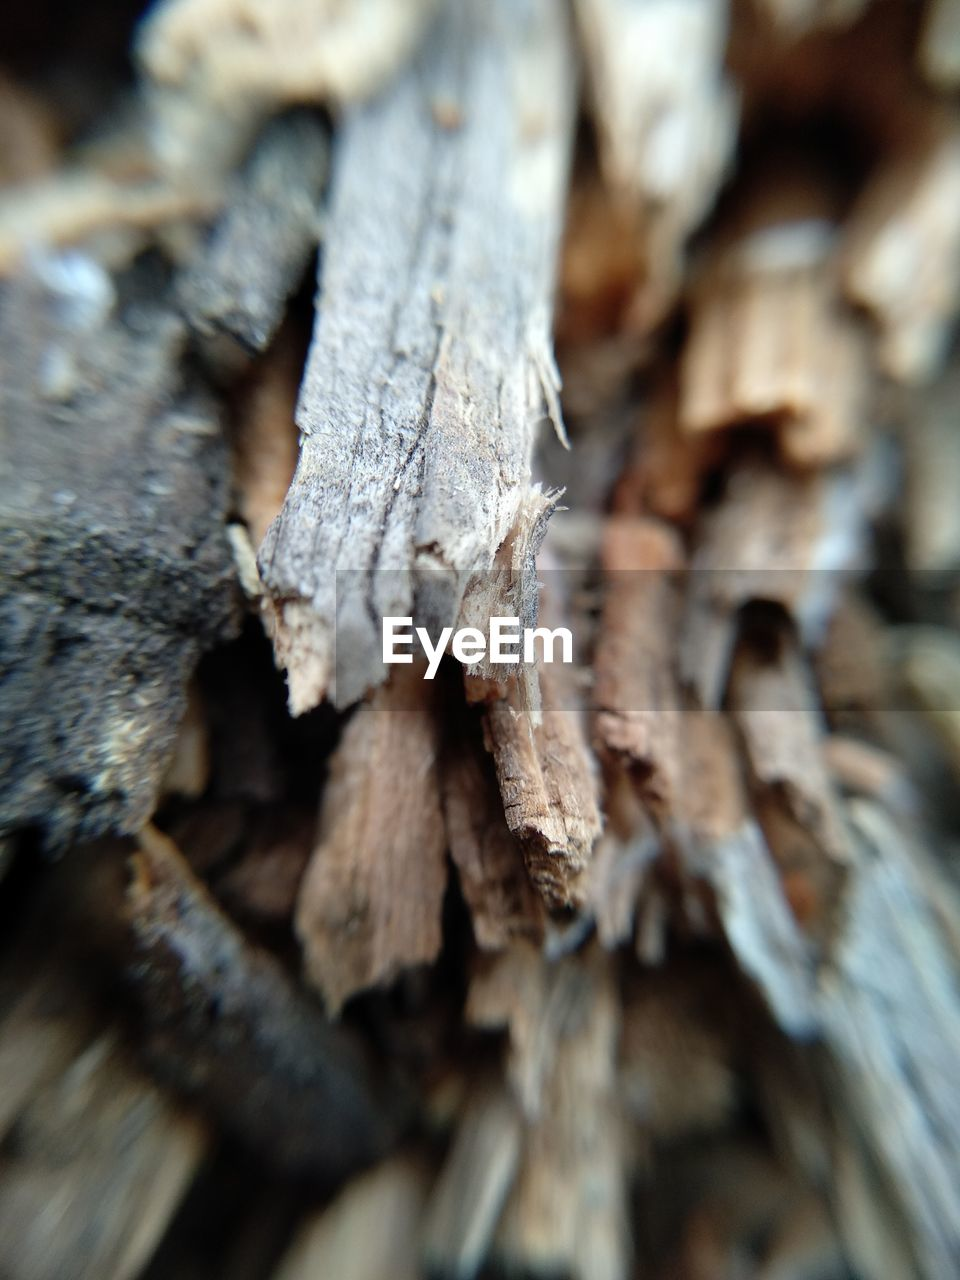 close-up, tree, wood - material, selective focus, no people, textured, log, pattern, full frame, wood, backgrounds, nature, timber, rough, day, plant, tree trunk, trunk, brown, outdoors, bark